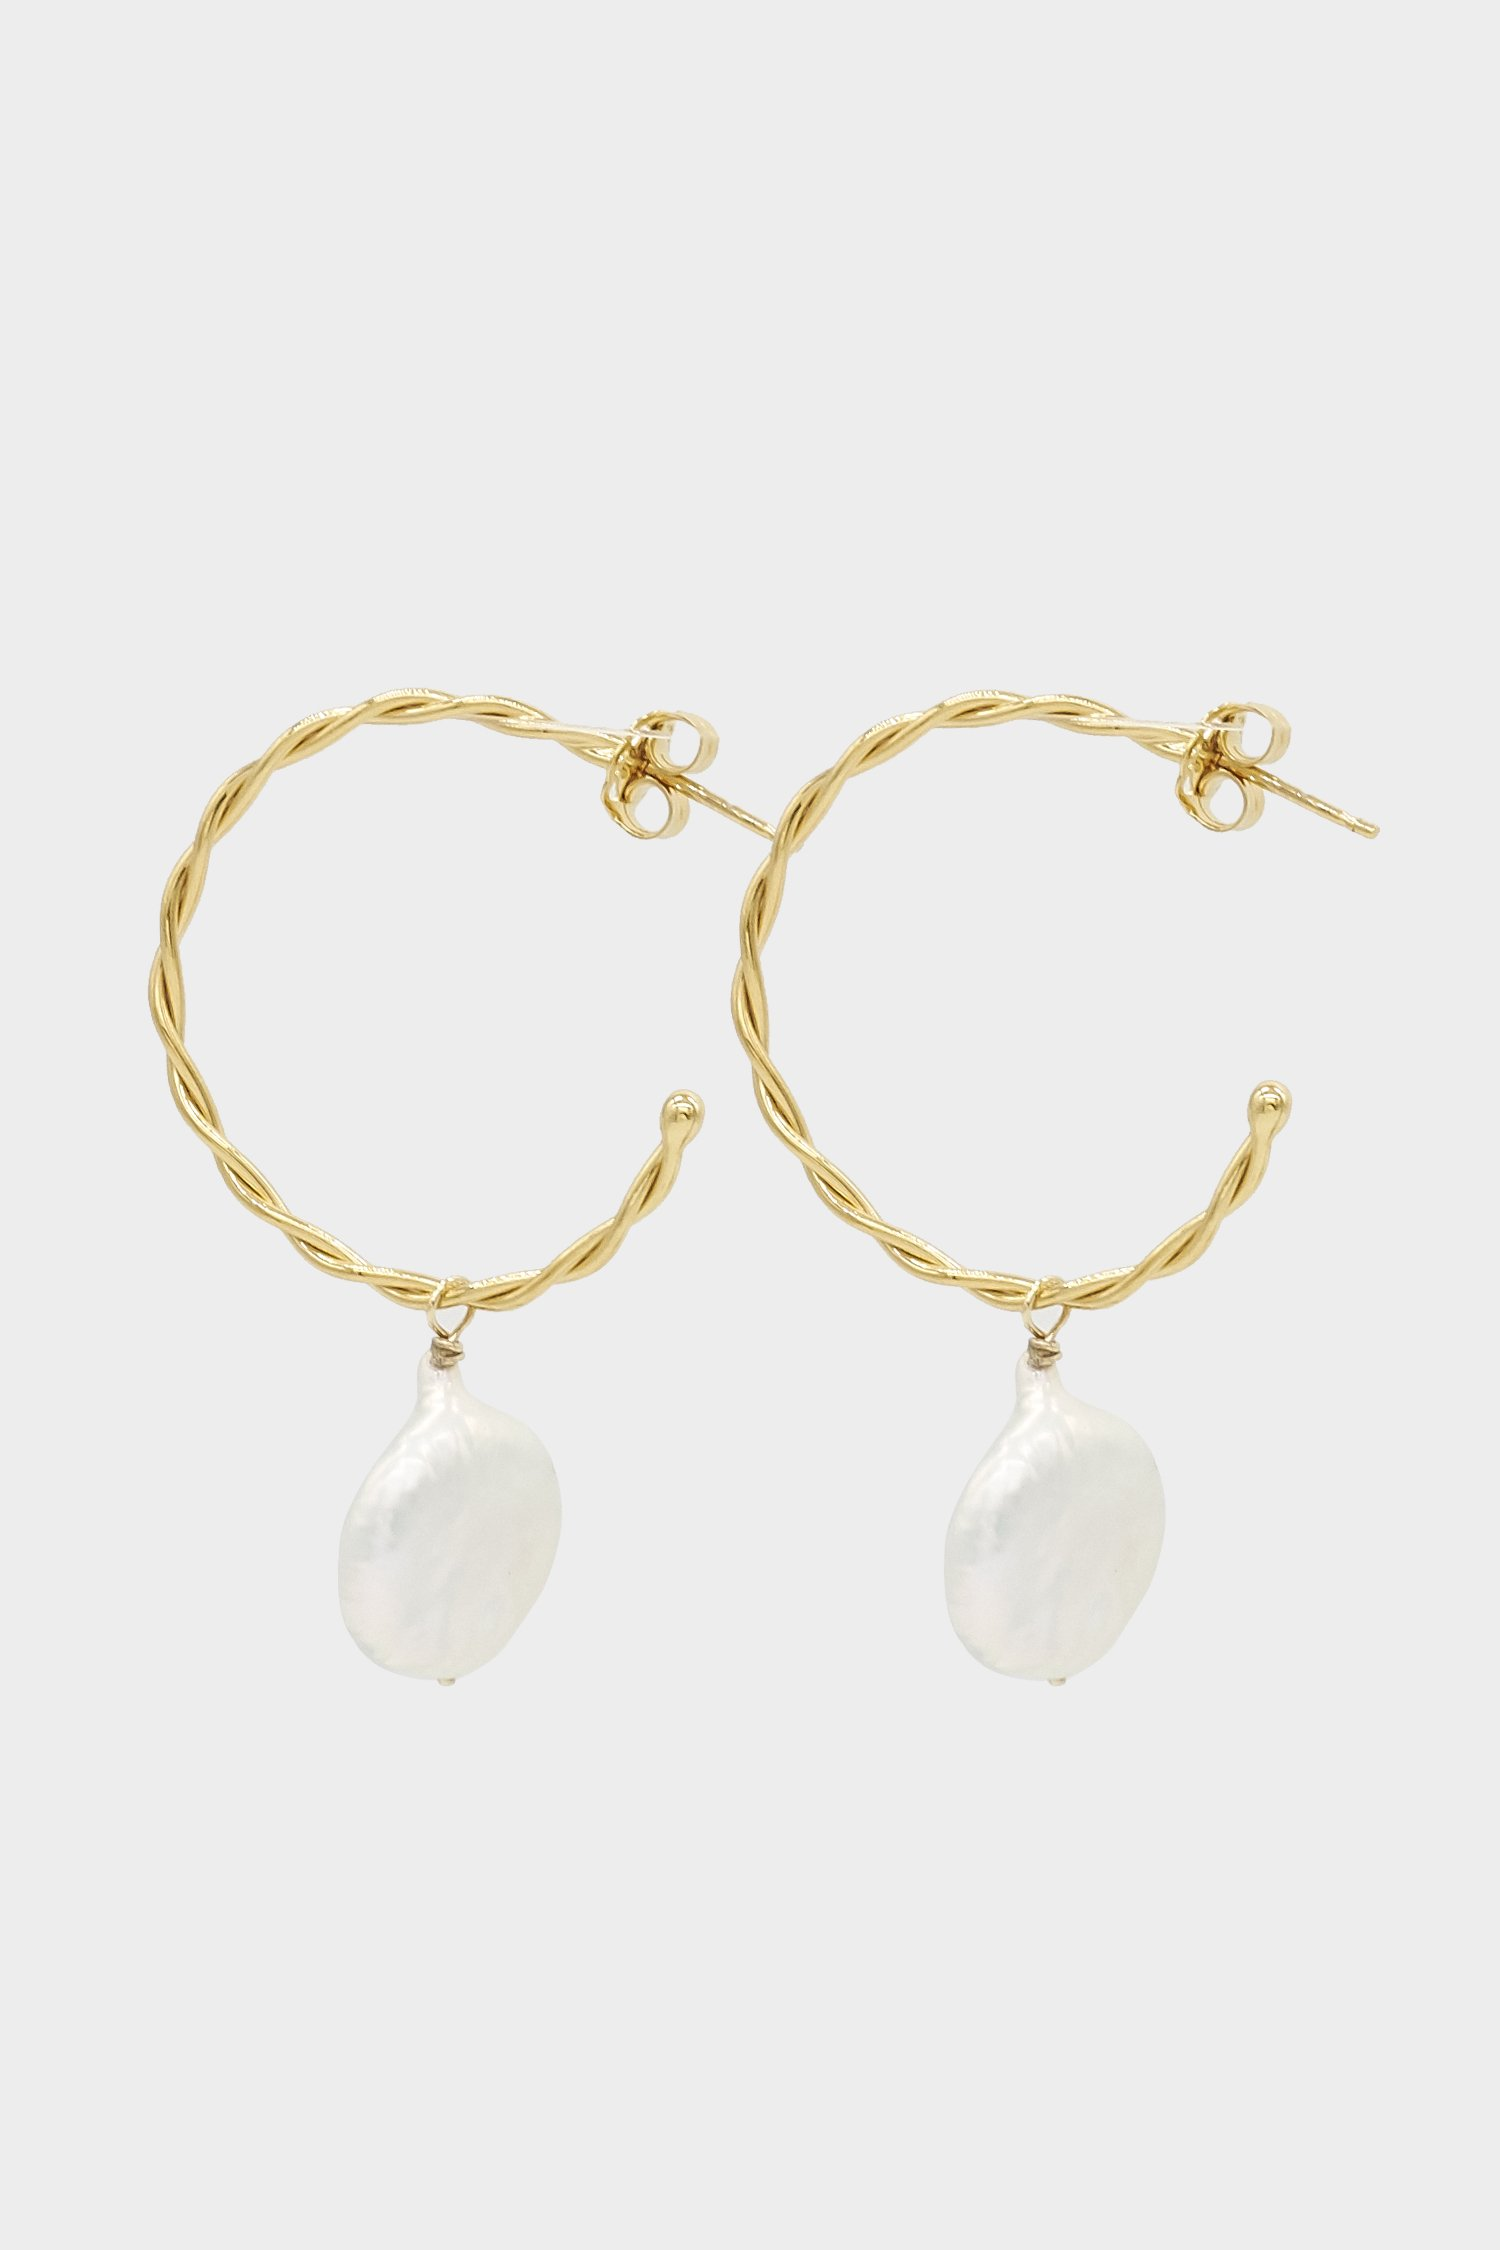 Jewellery Designer Natasha Schweitzer Pearl & Gold Earrings featured on LOVE FIND CO.